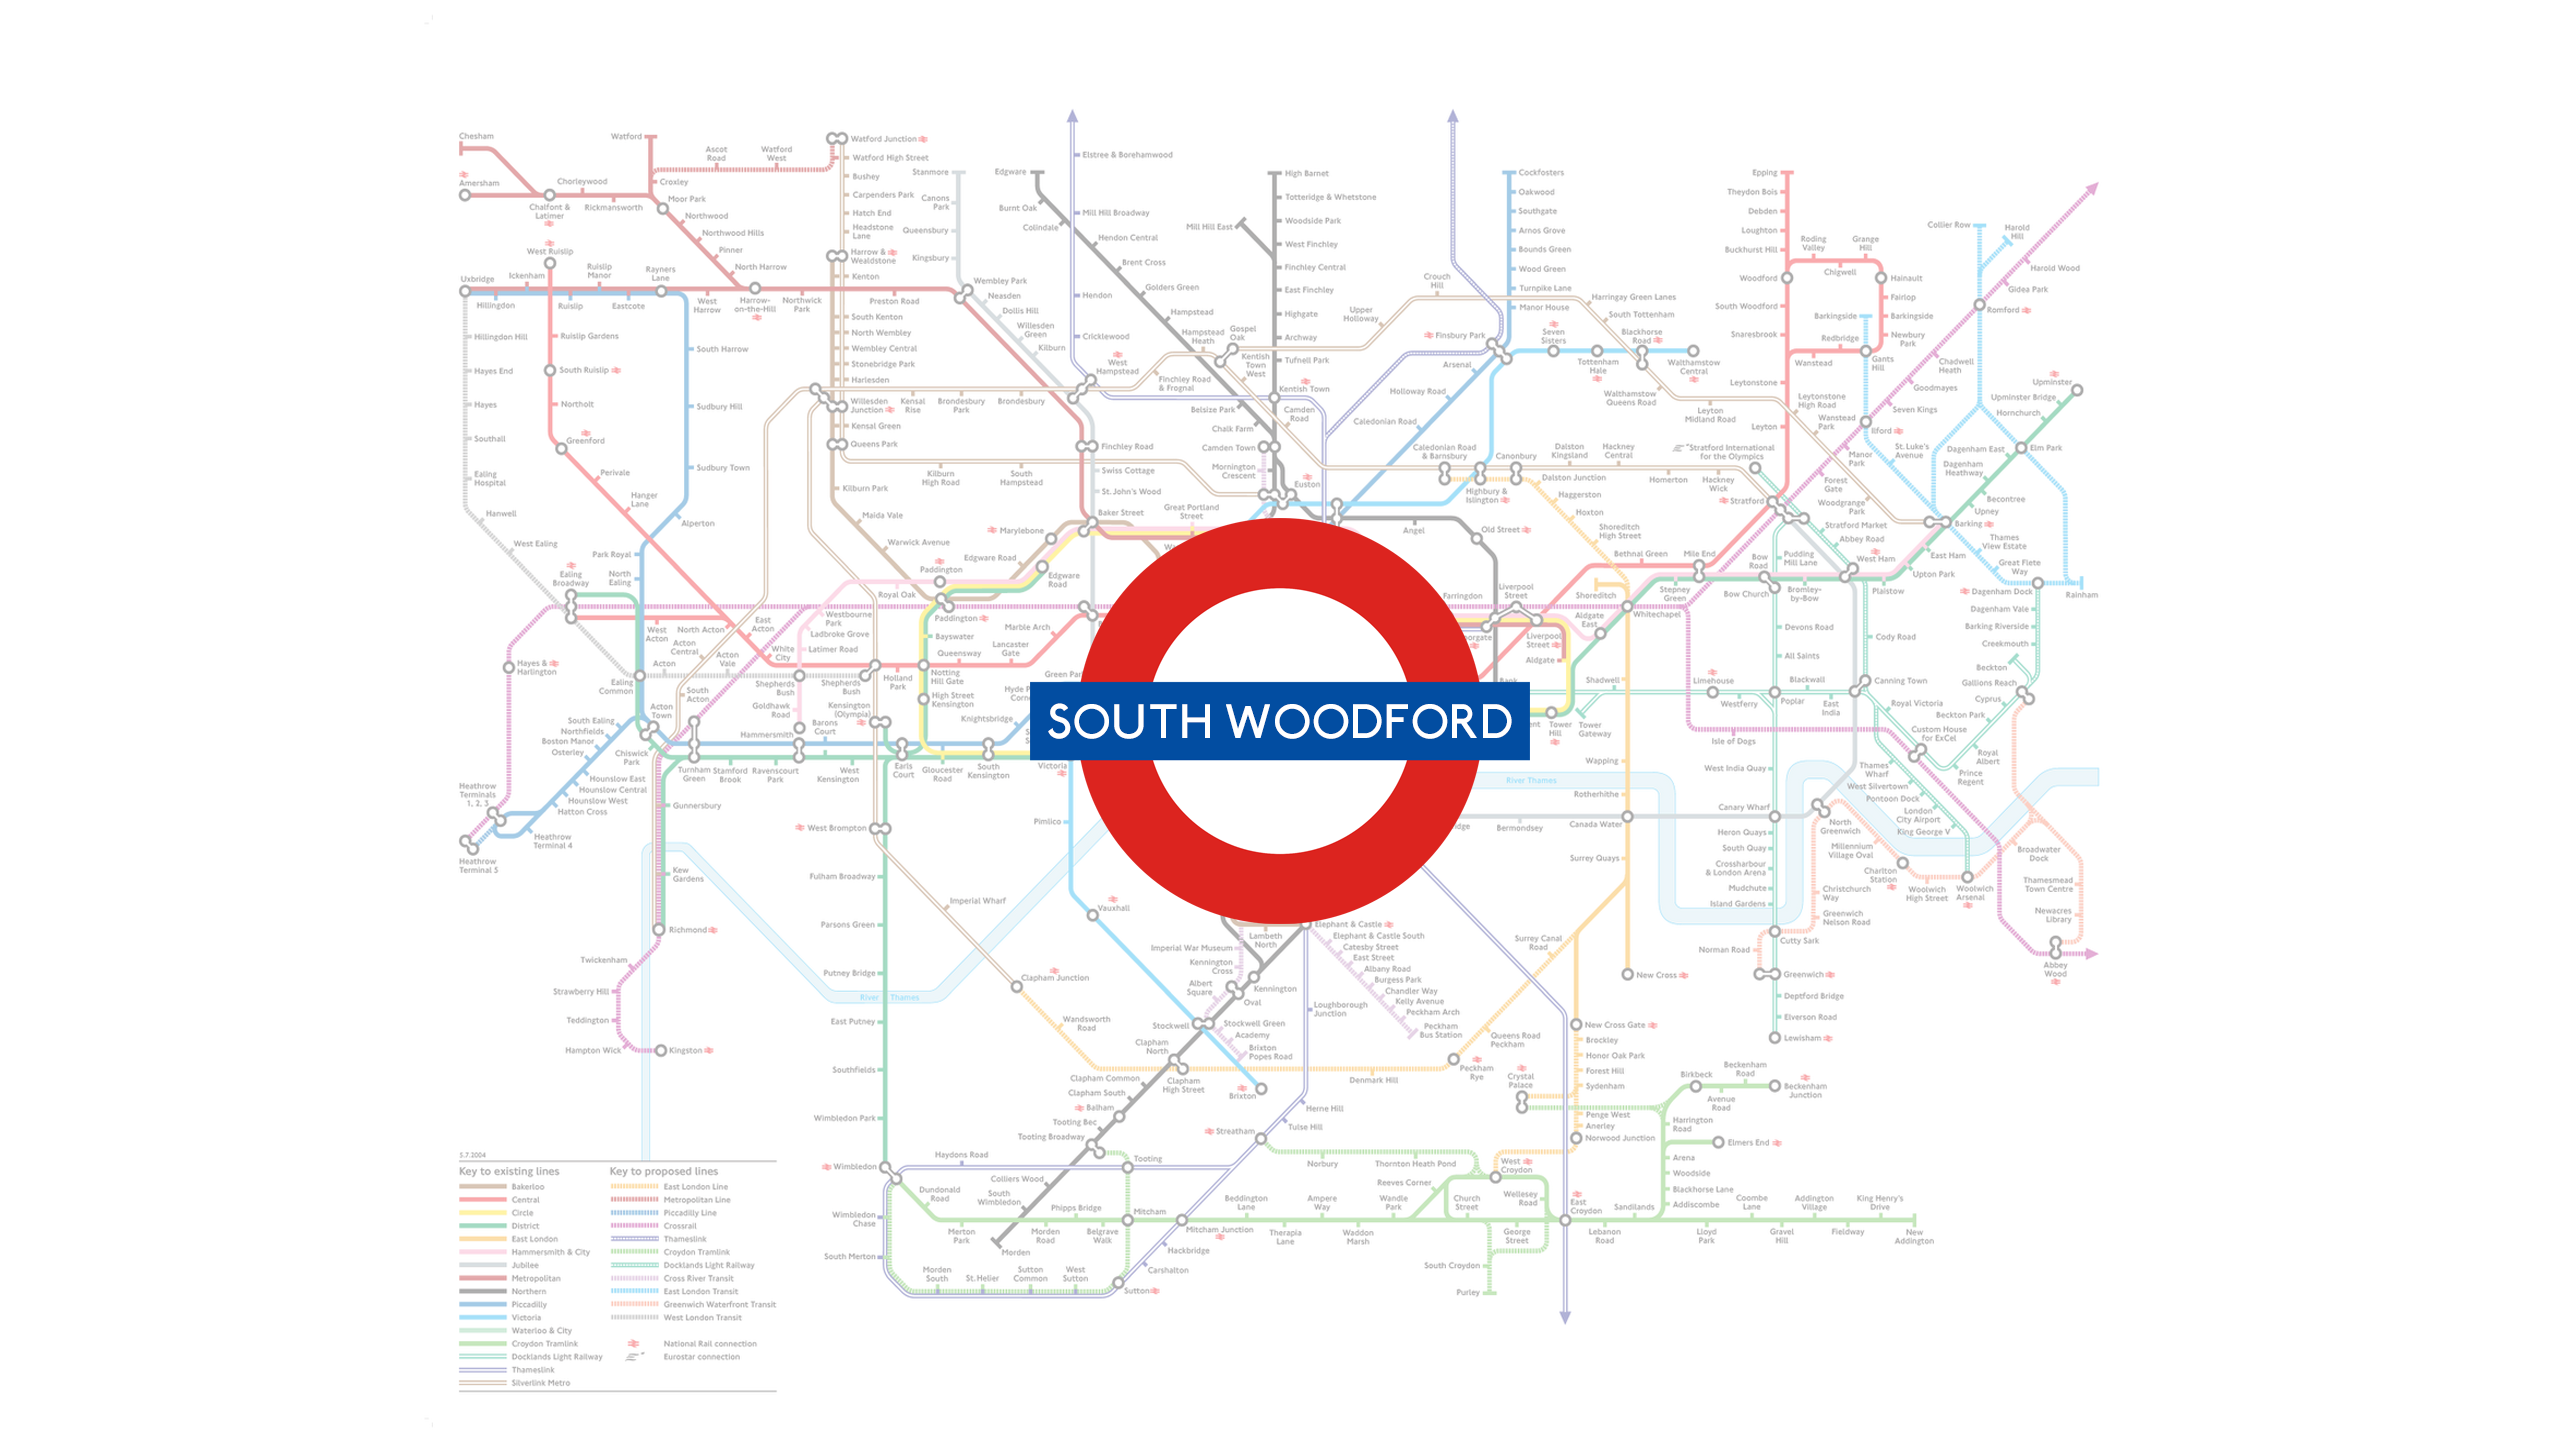 South Woodford (Map)